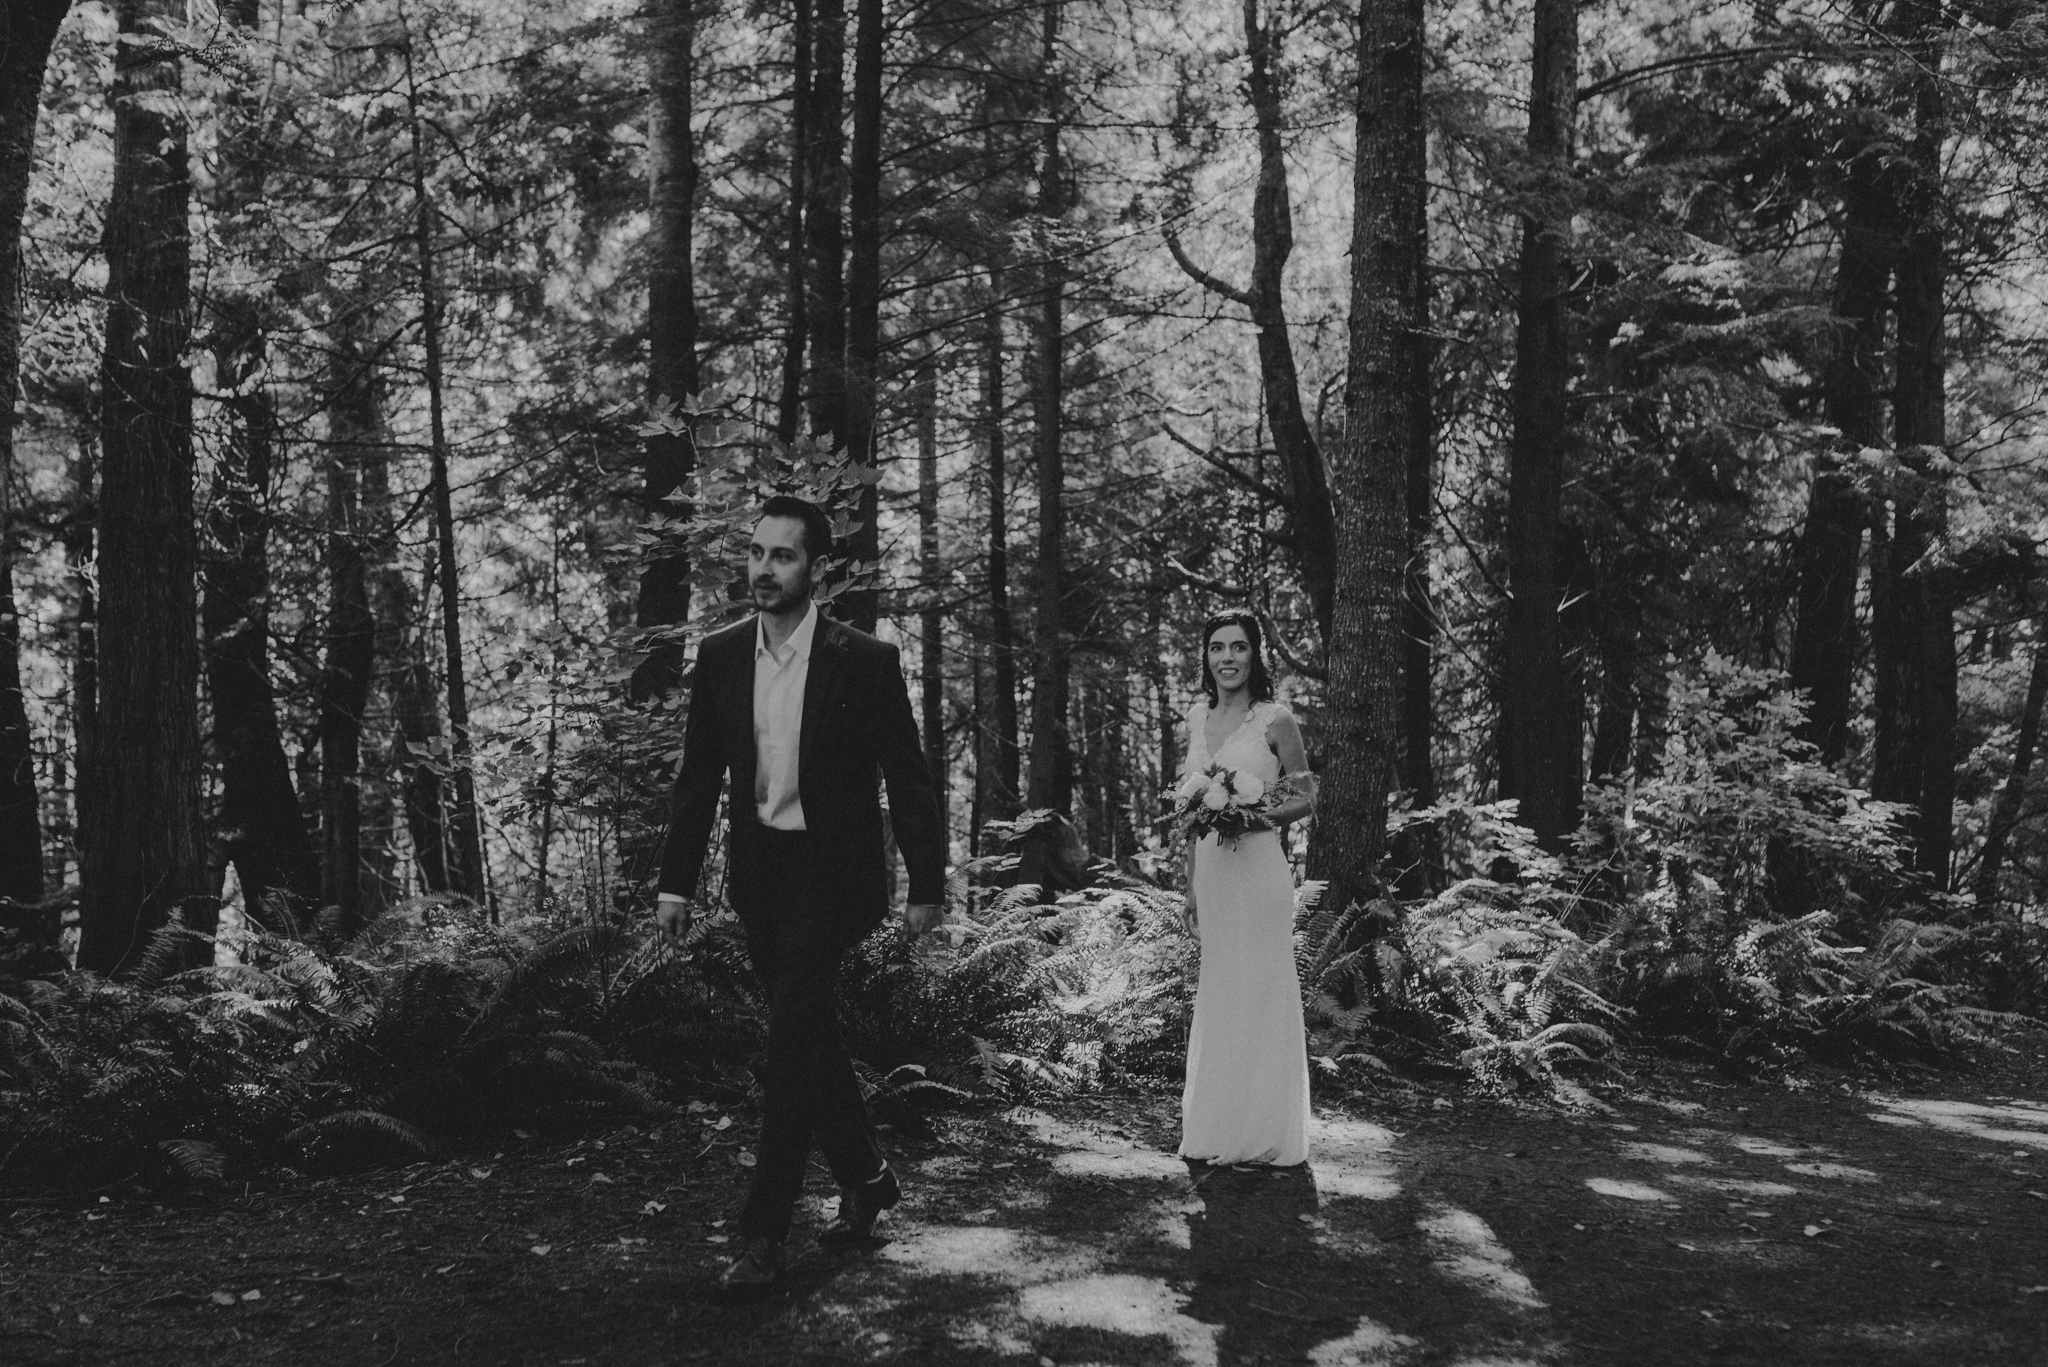 Isaiah + Taylor Photography - Cape Flattery Elopement, Olympia National Forest Wedding Photographer-016.jpg